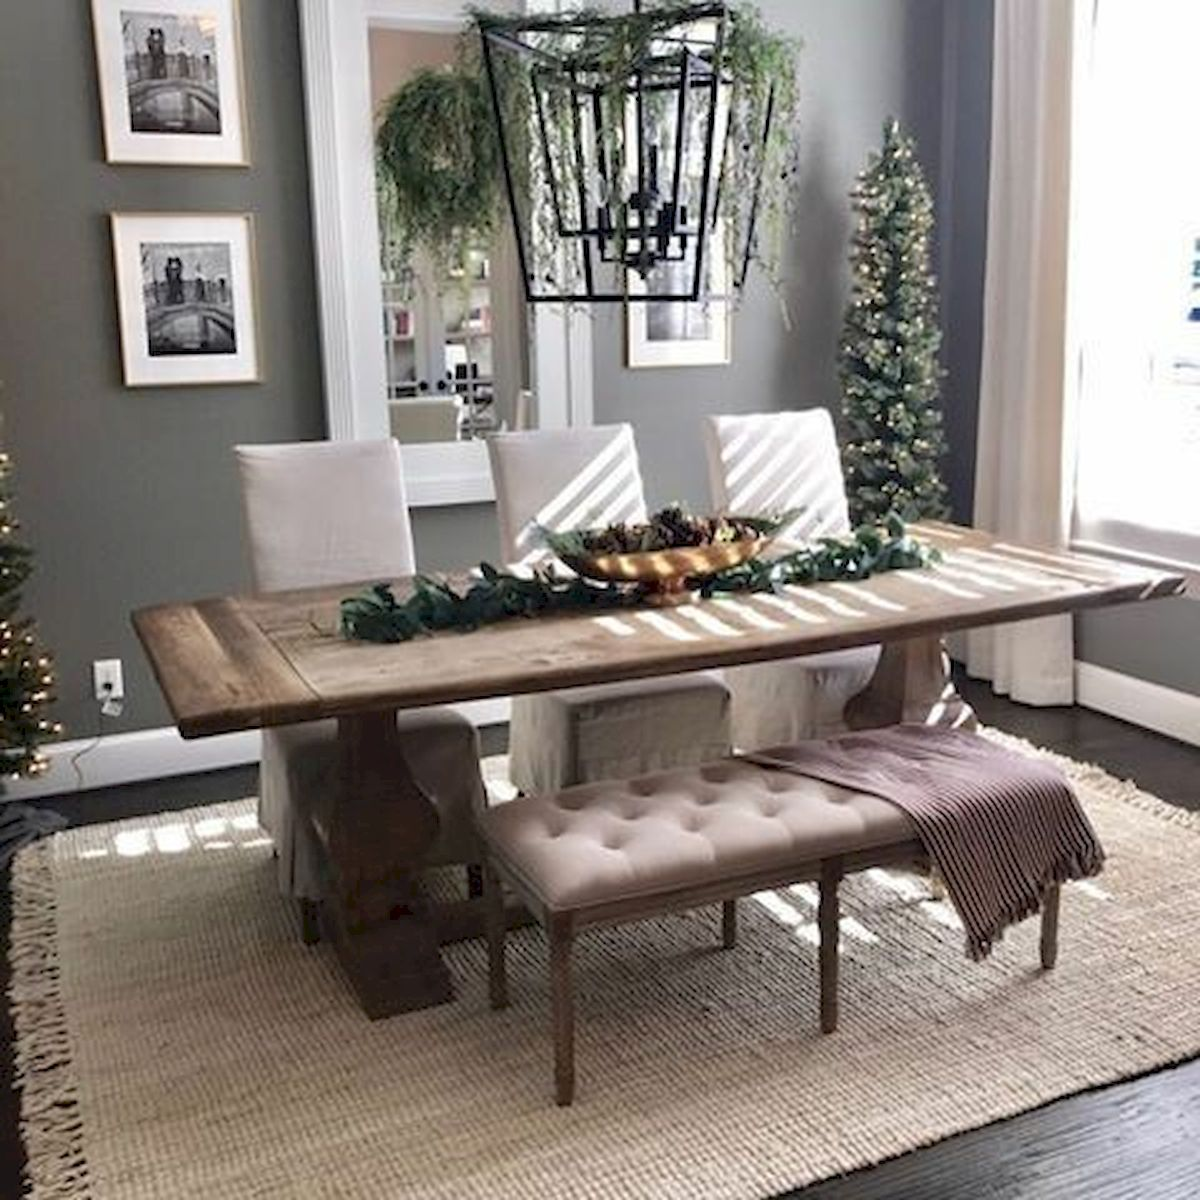 50 Gorgeous Dinning Room Design and Decor Ideas (42)